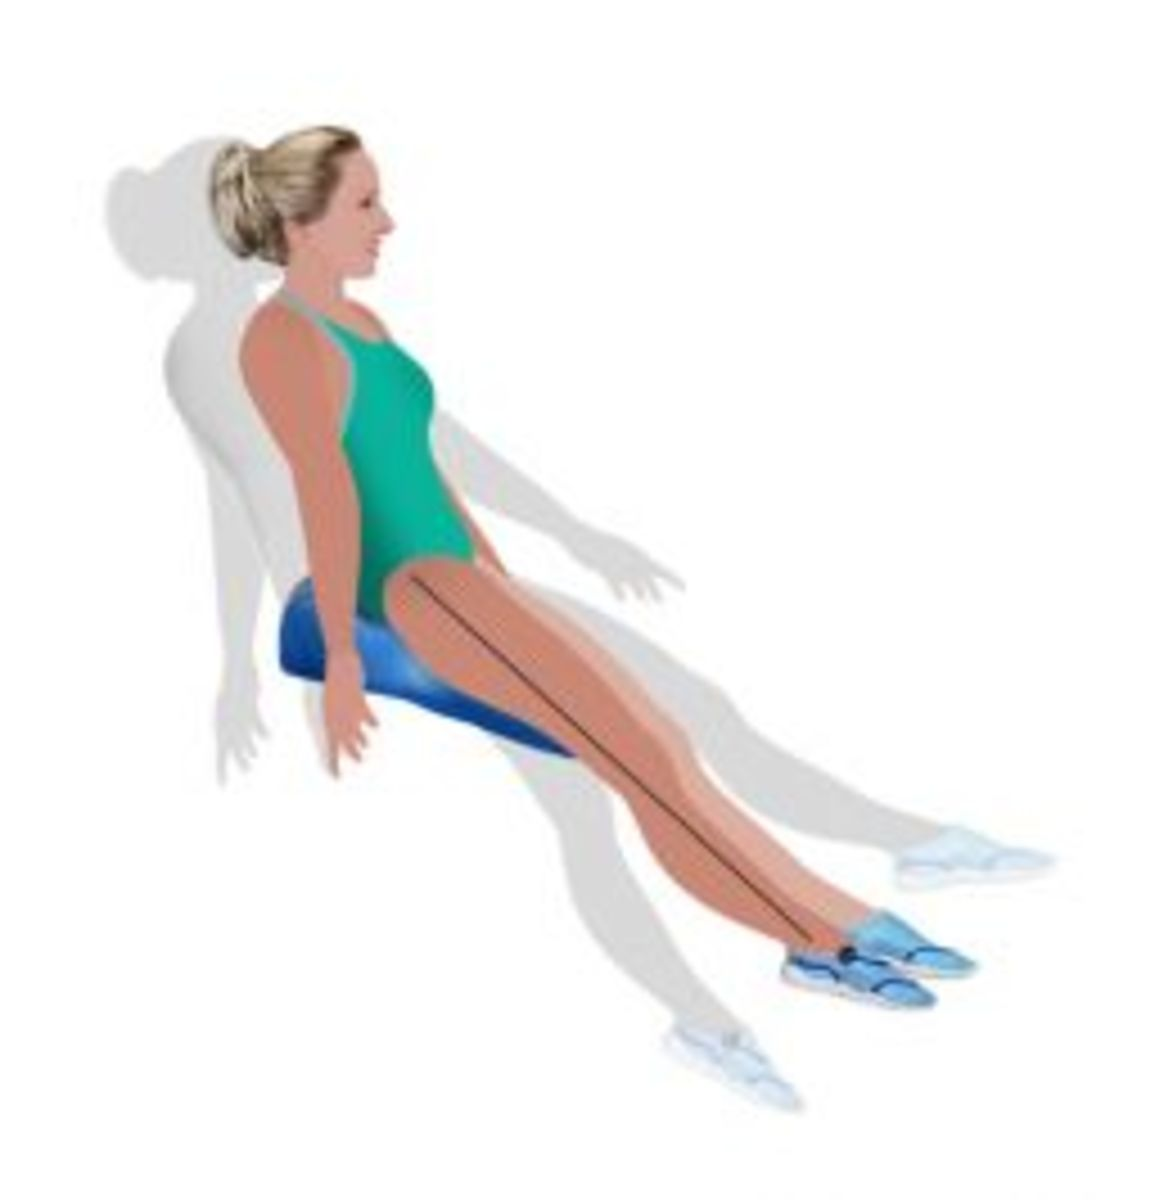 Seated Balance with the Swim Board called the EZ Swimmer